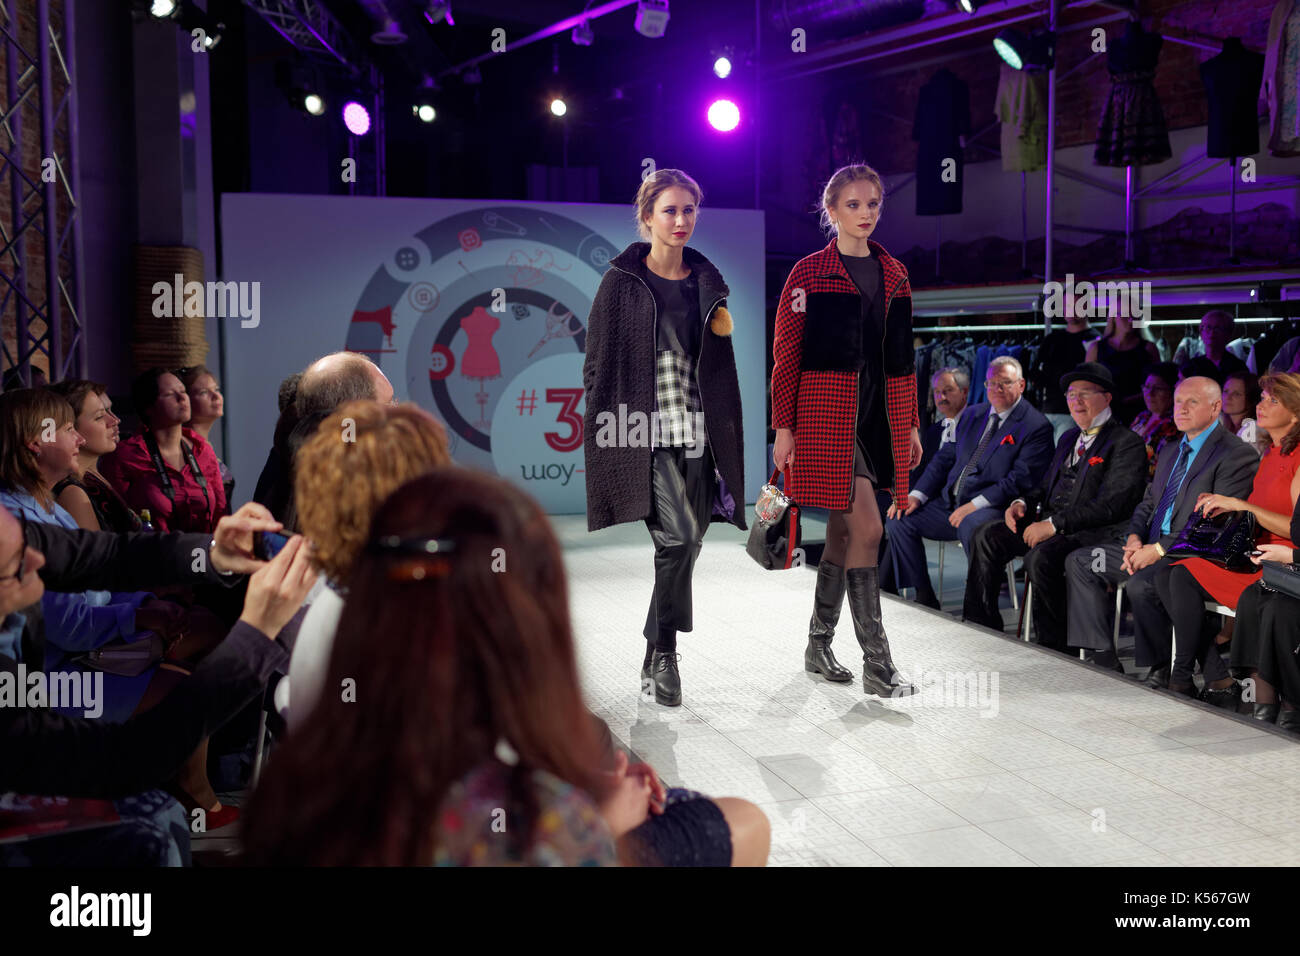 St. Petersburg, Russia - September 14, 2015  Fashion show at the opening 18ed947bcf4